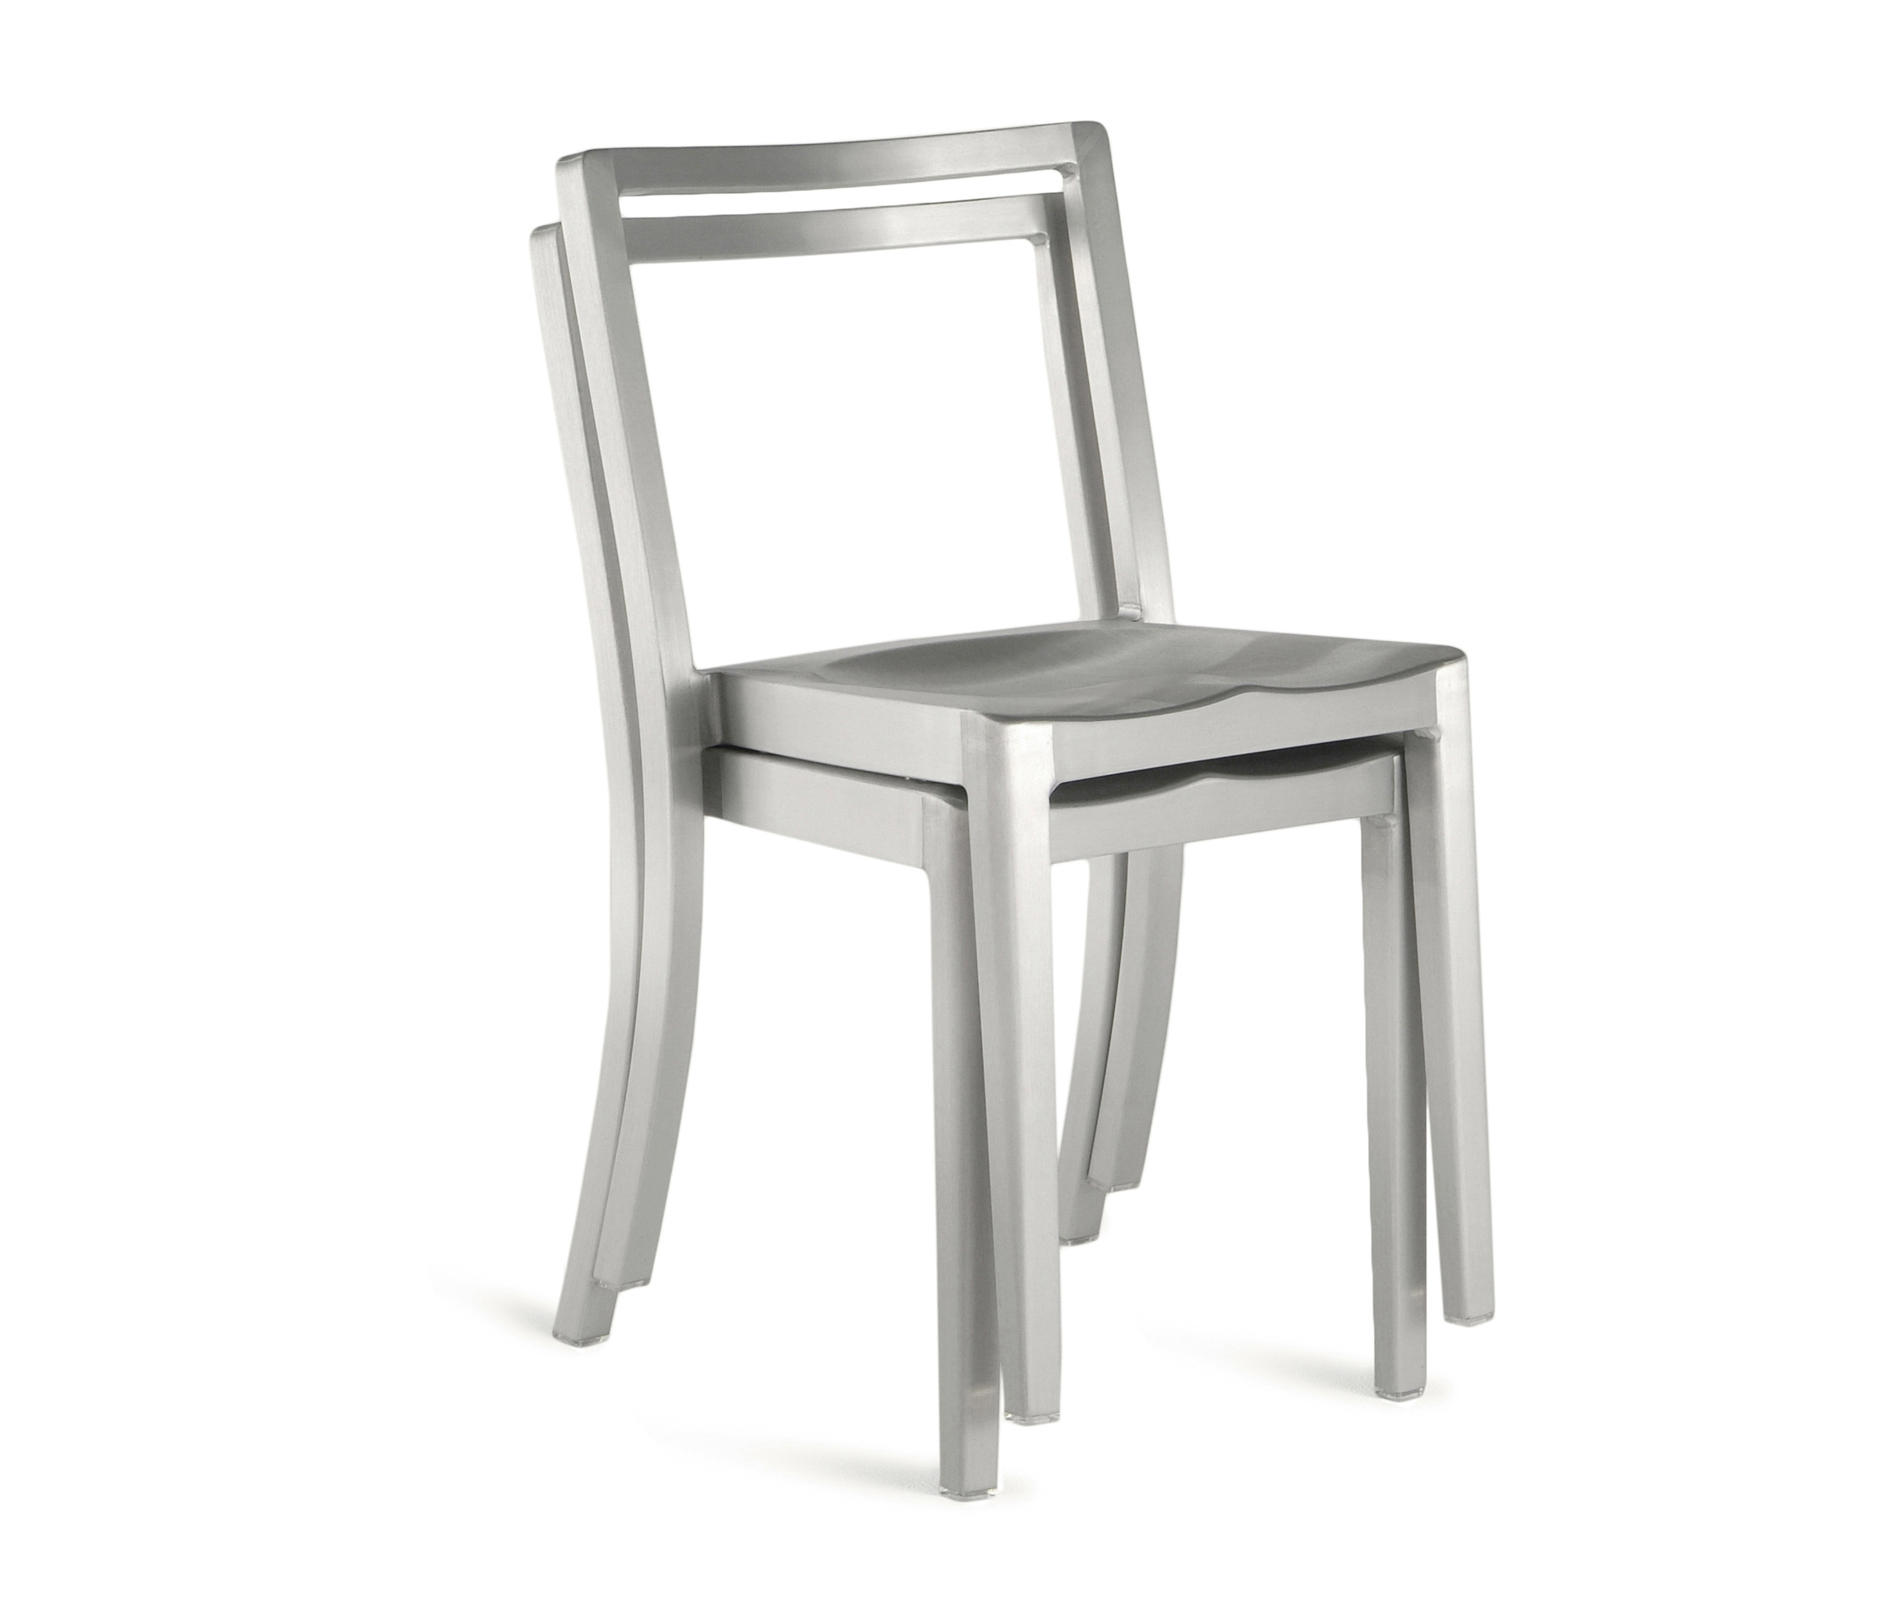 icon chair  restaurant chairs from emeco  architonic -  icon chair by emeco  restaurant chairs